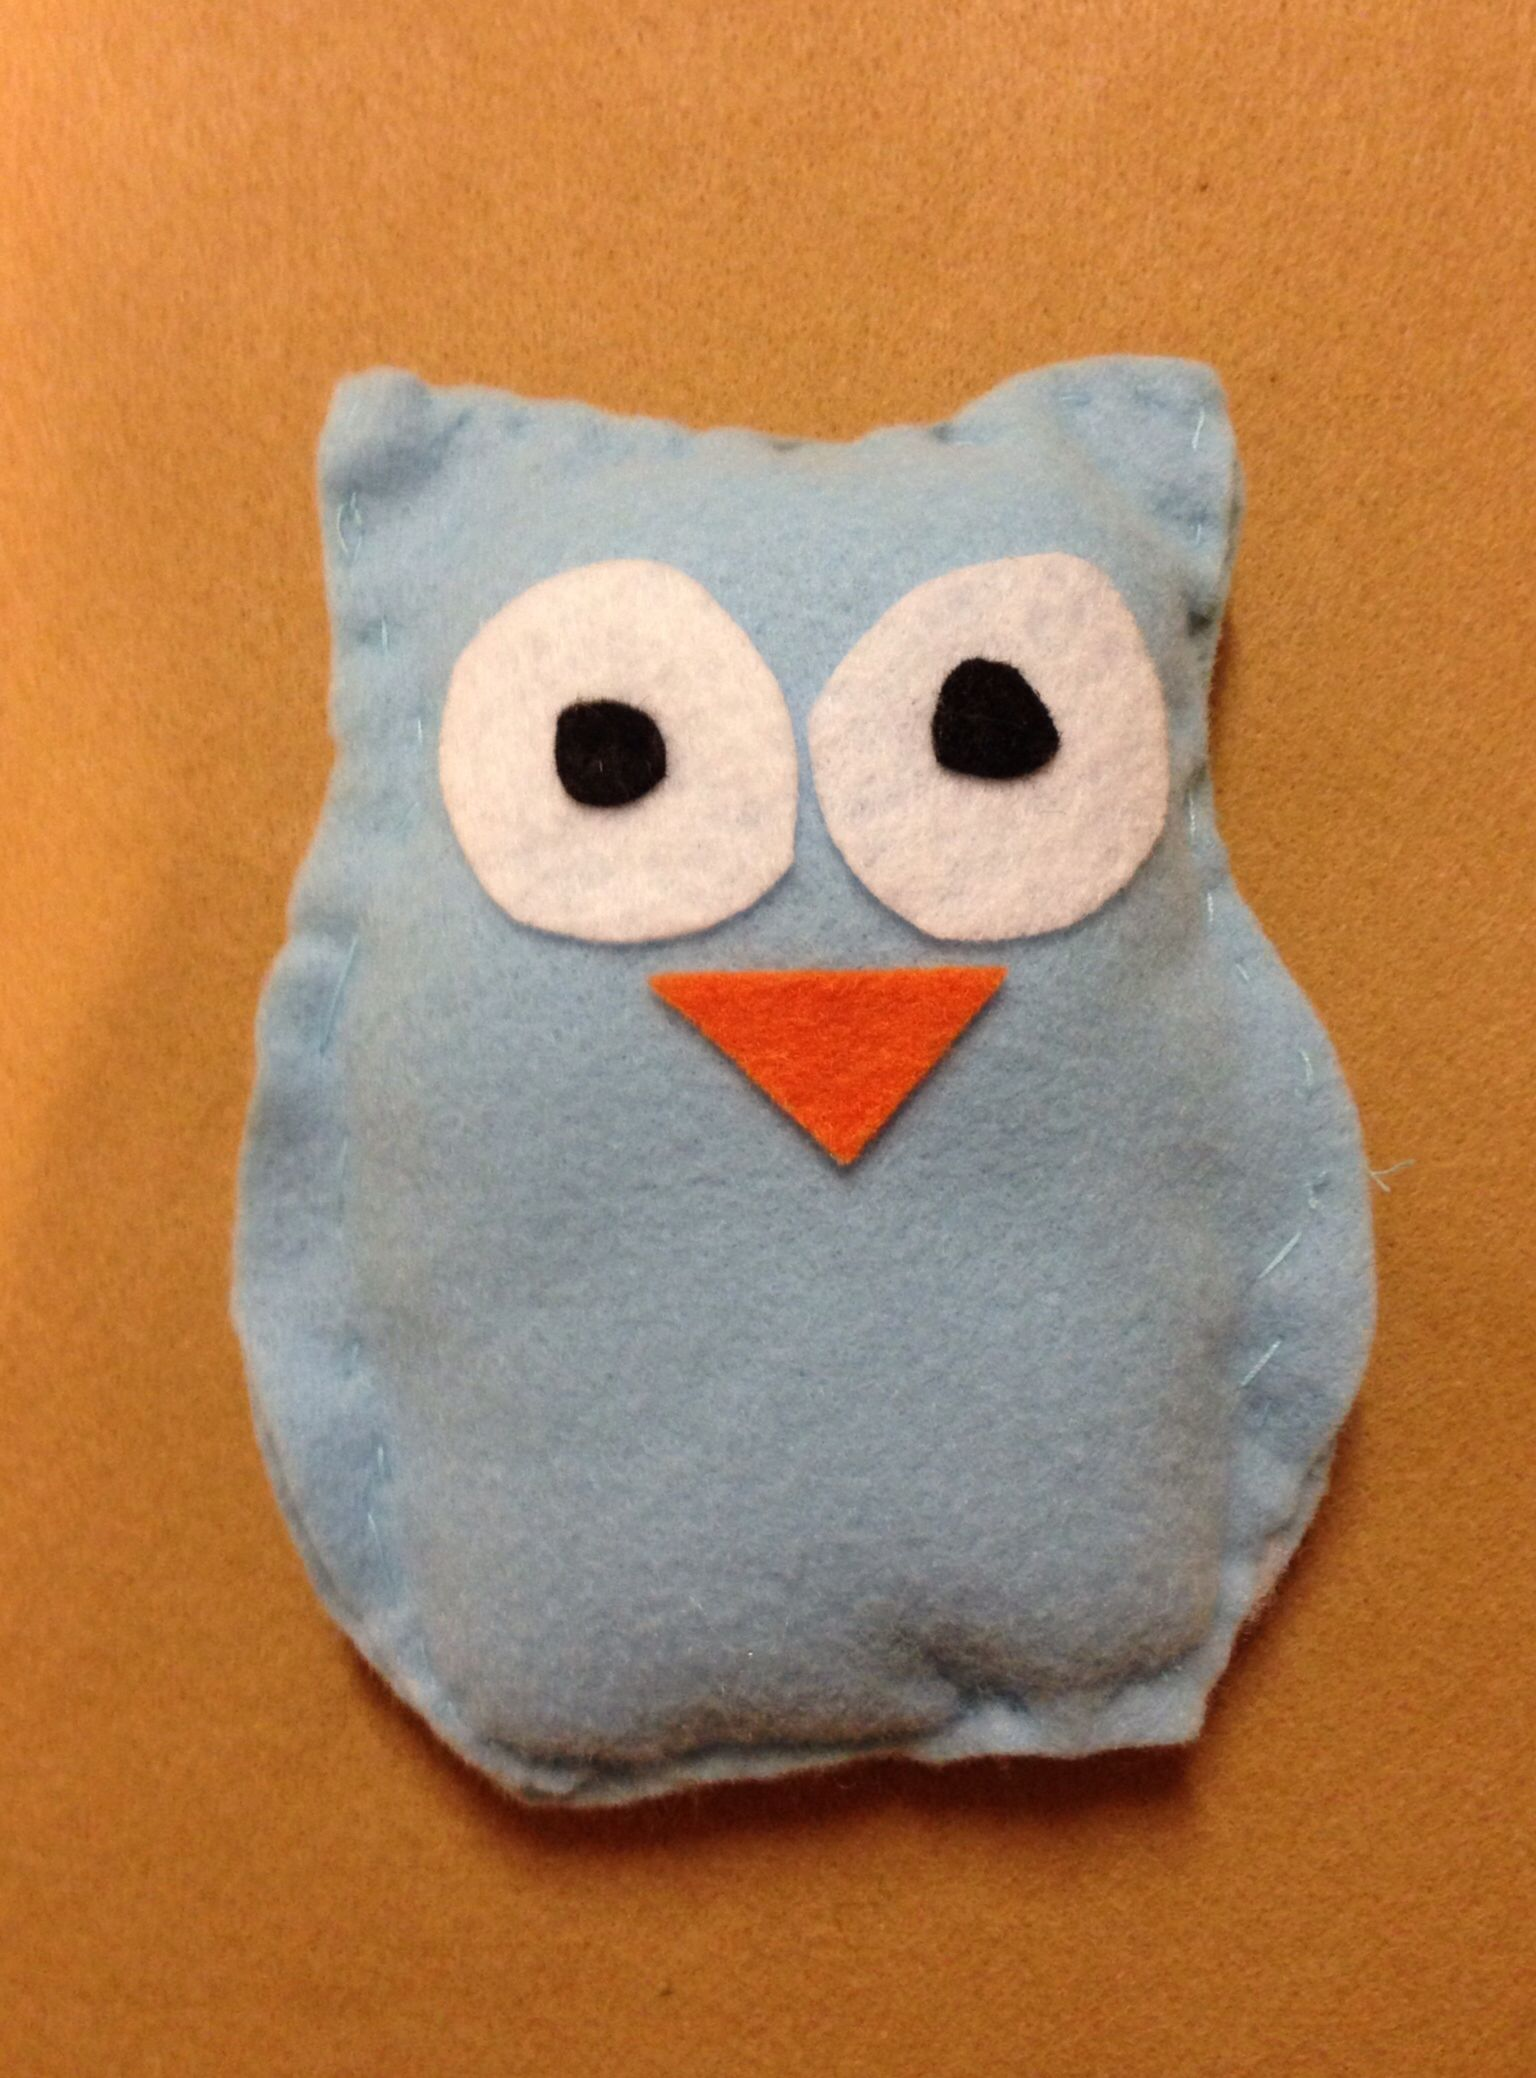 Kids sew projects Owl sew project